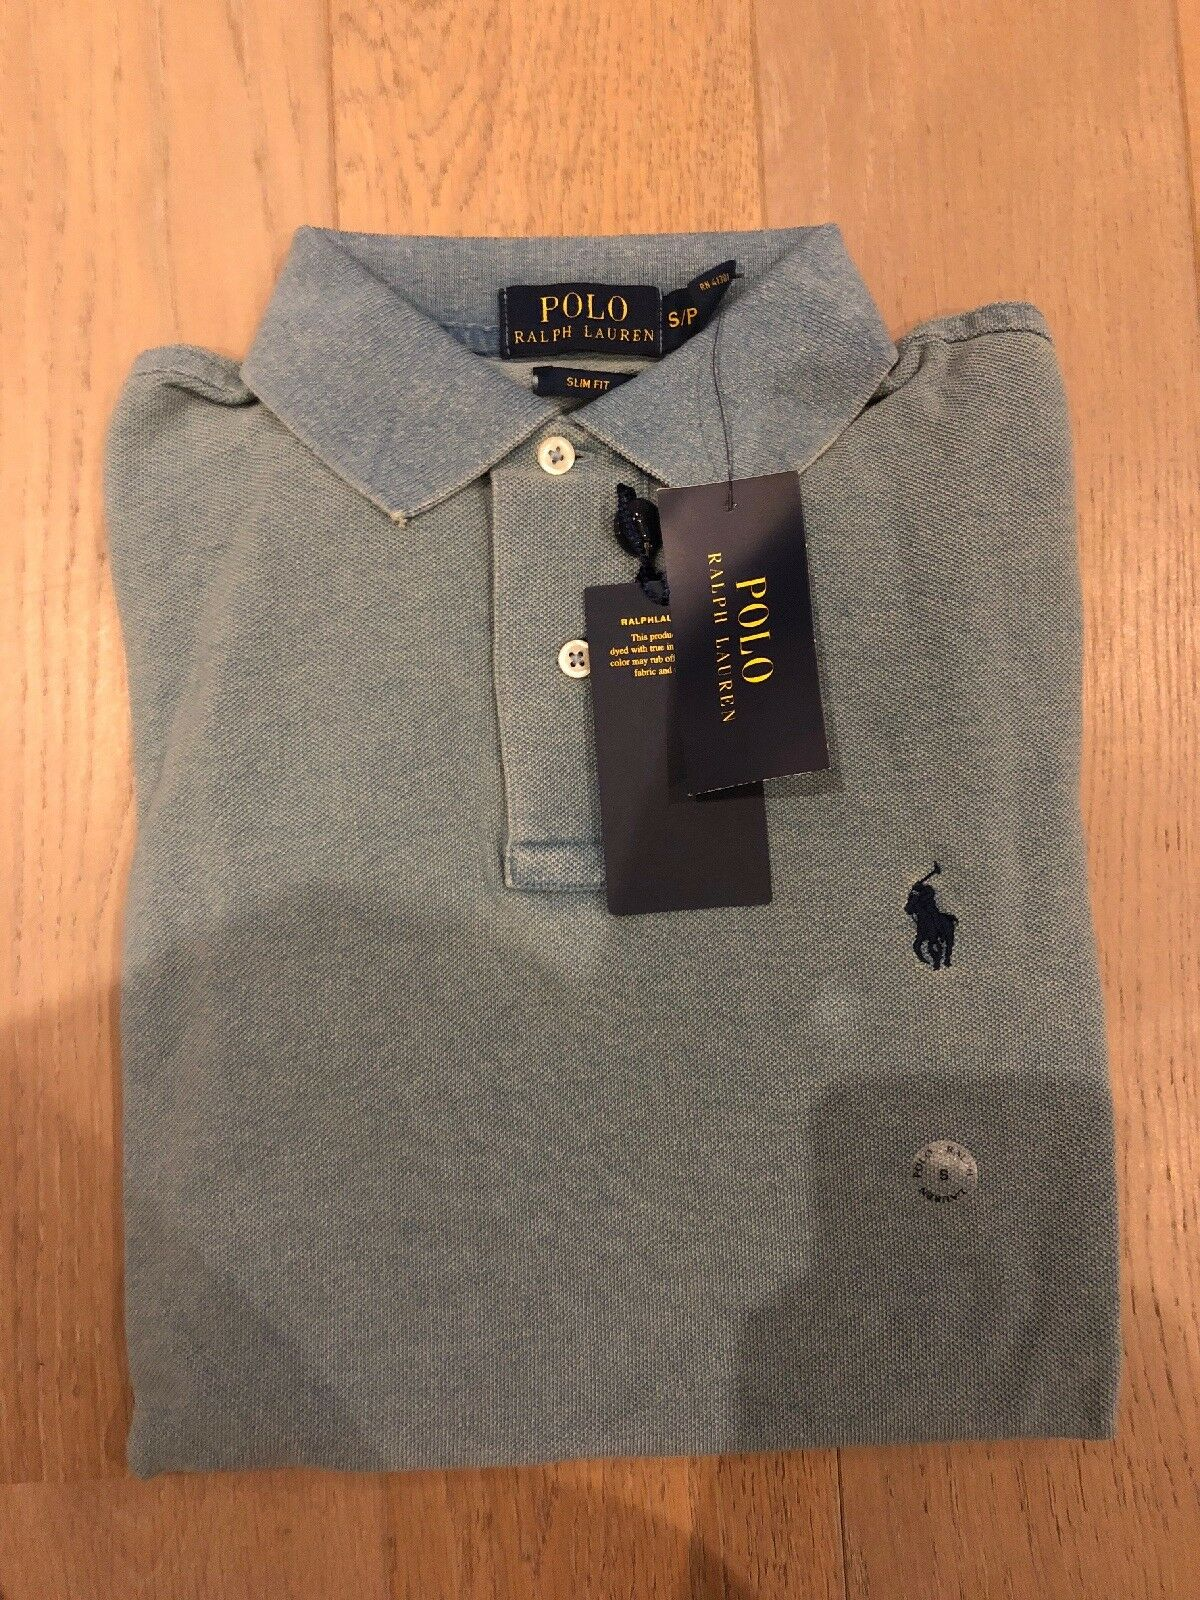 Ralph Lauren Polo Shirt Slim Fit Small Dyed bluee Cotton